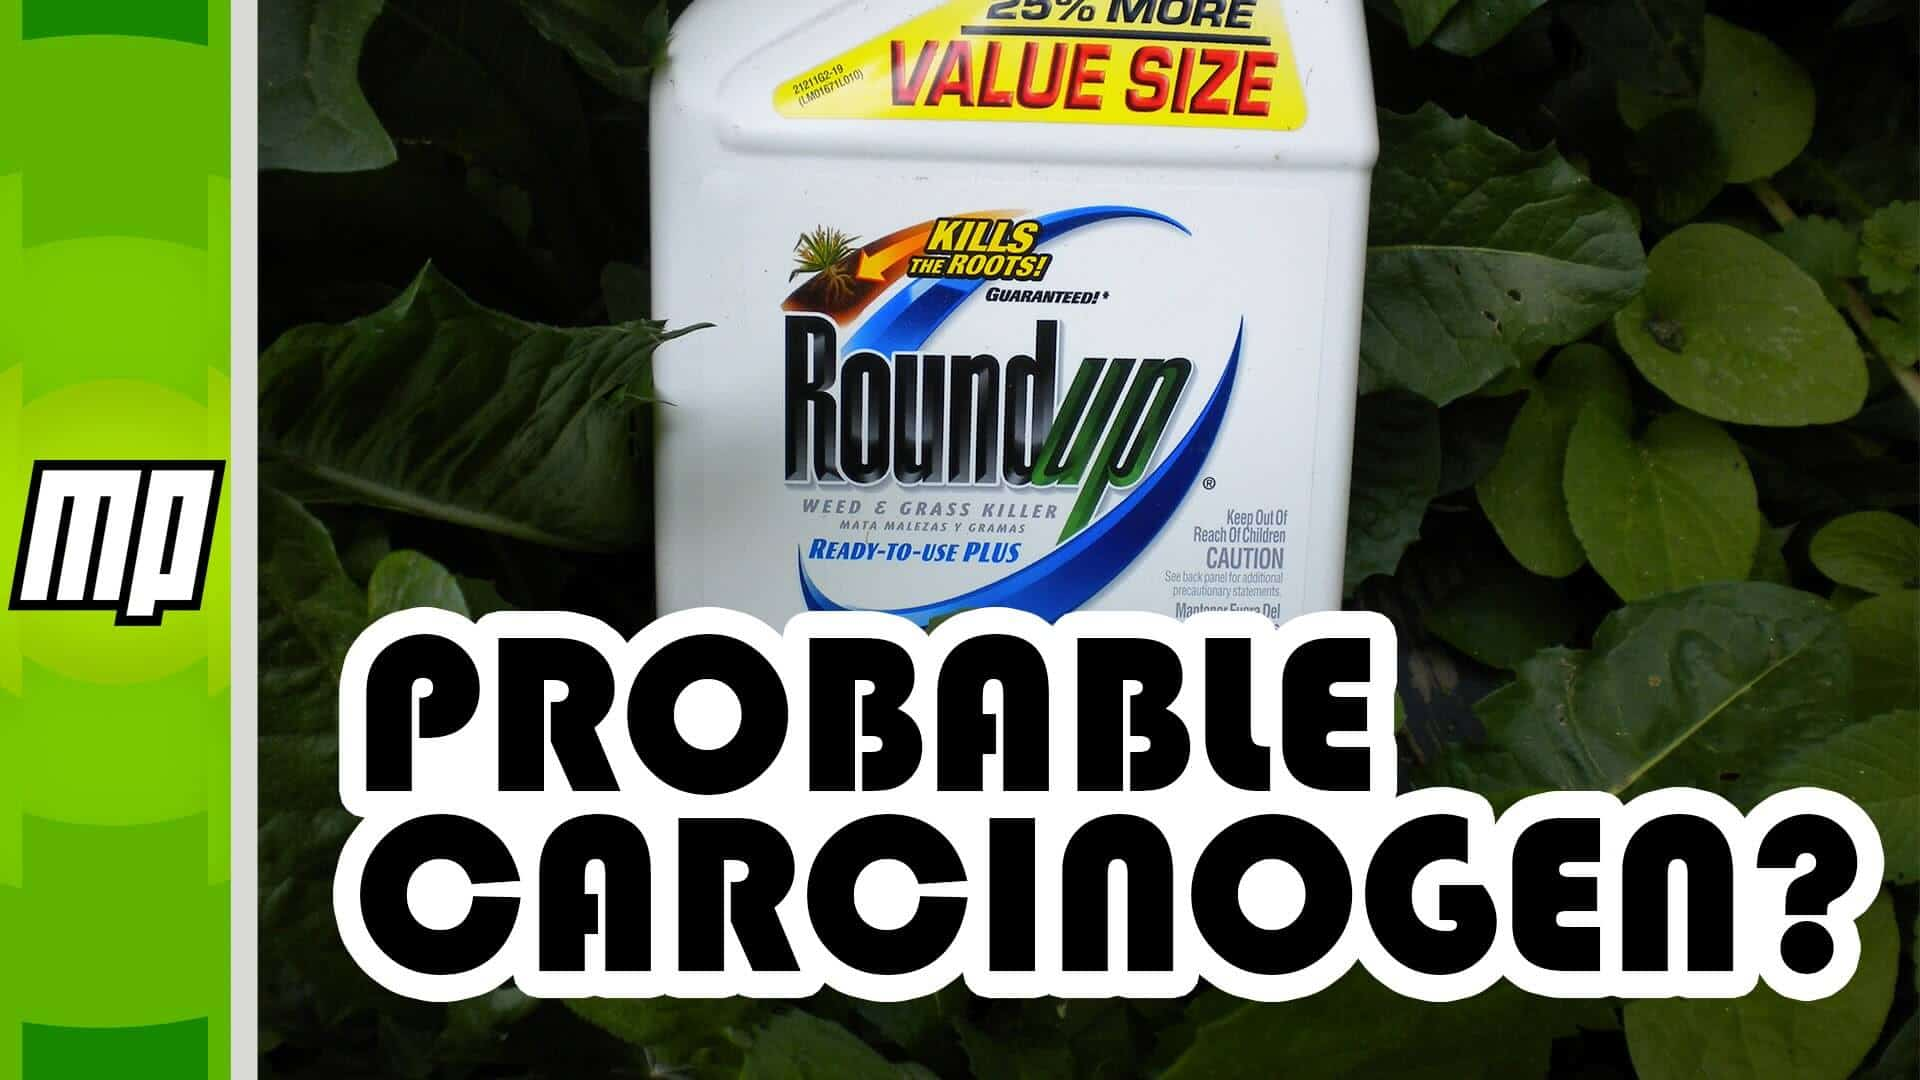 Is glyphosate carcinogenic?